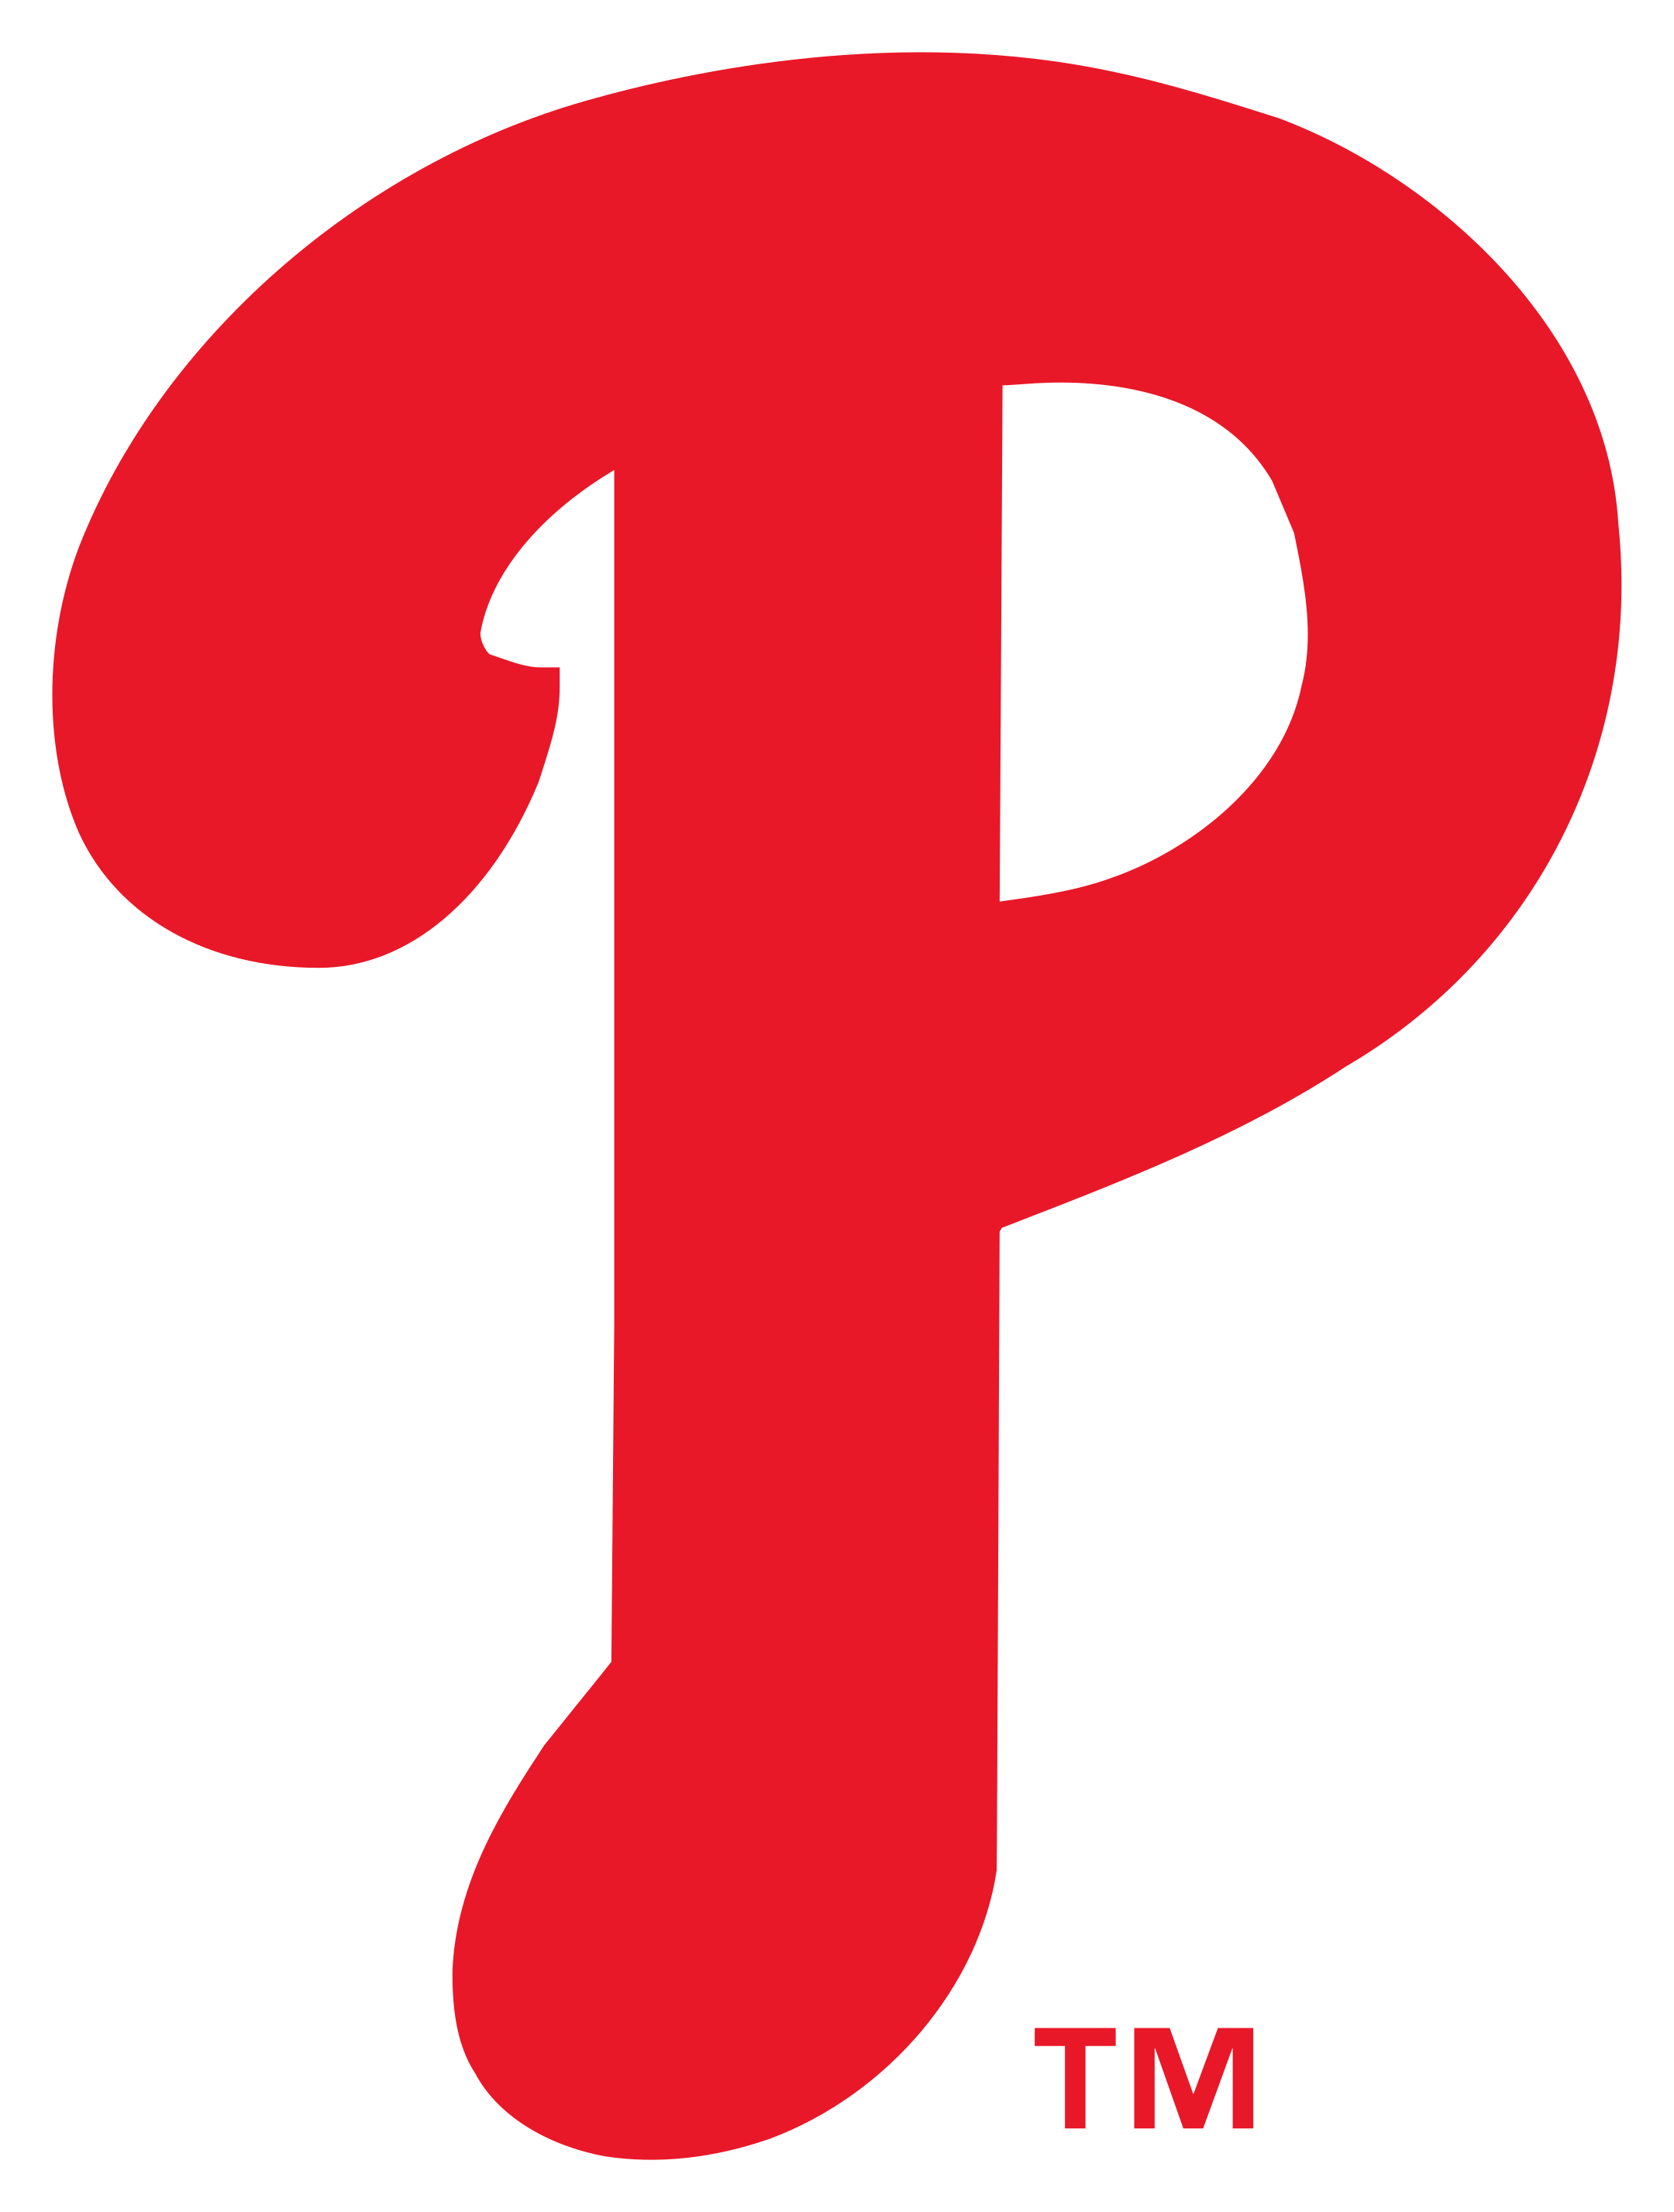 philadelphia phillies logo 1 - Philadelphia Phillies Logo